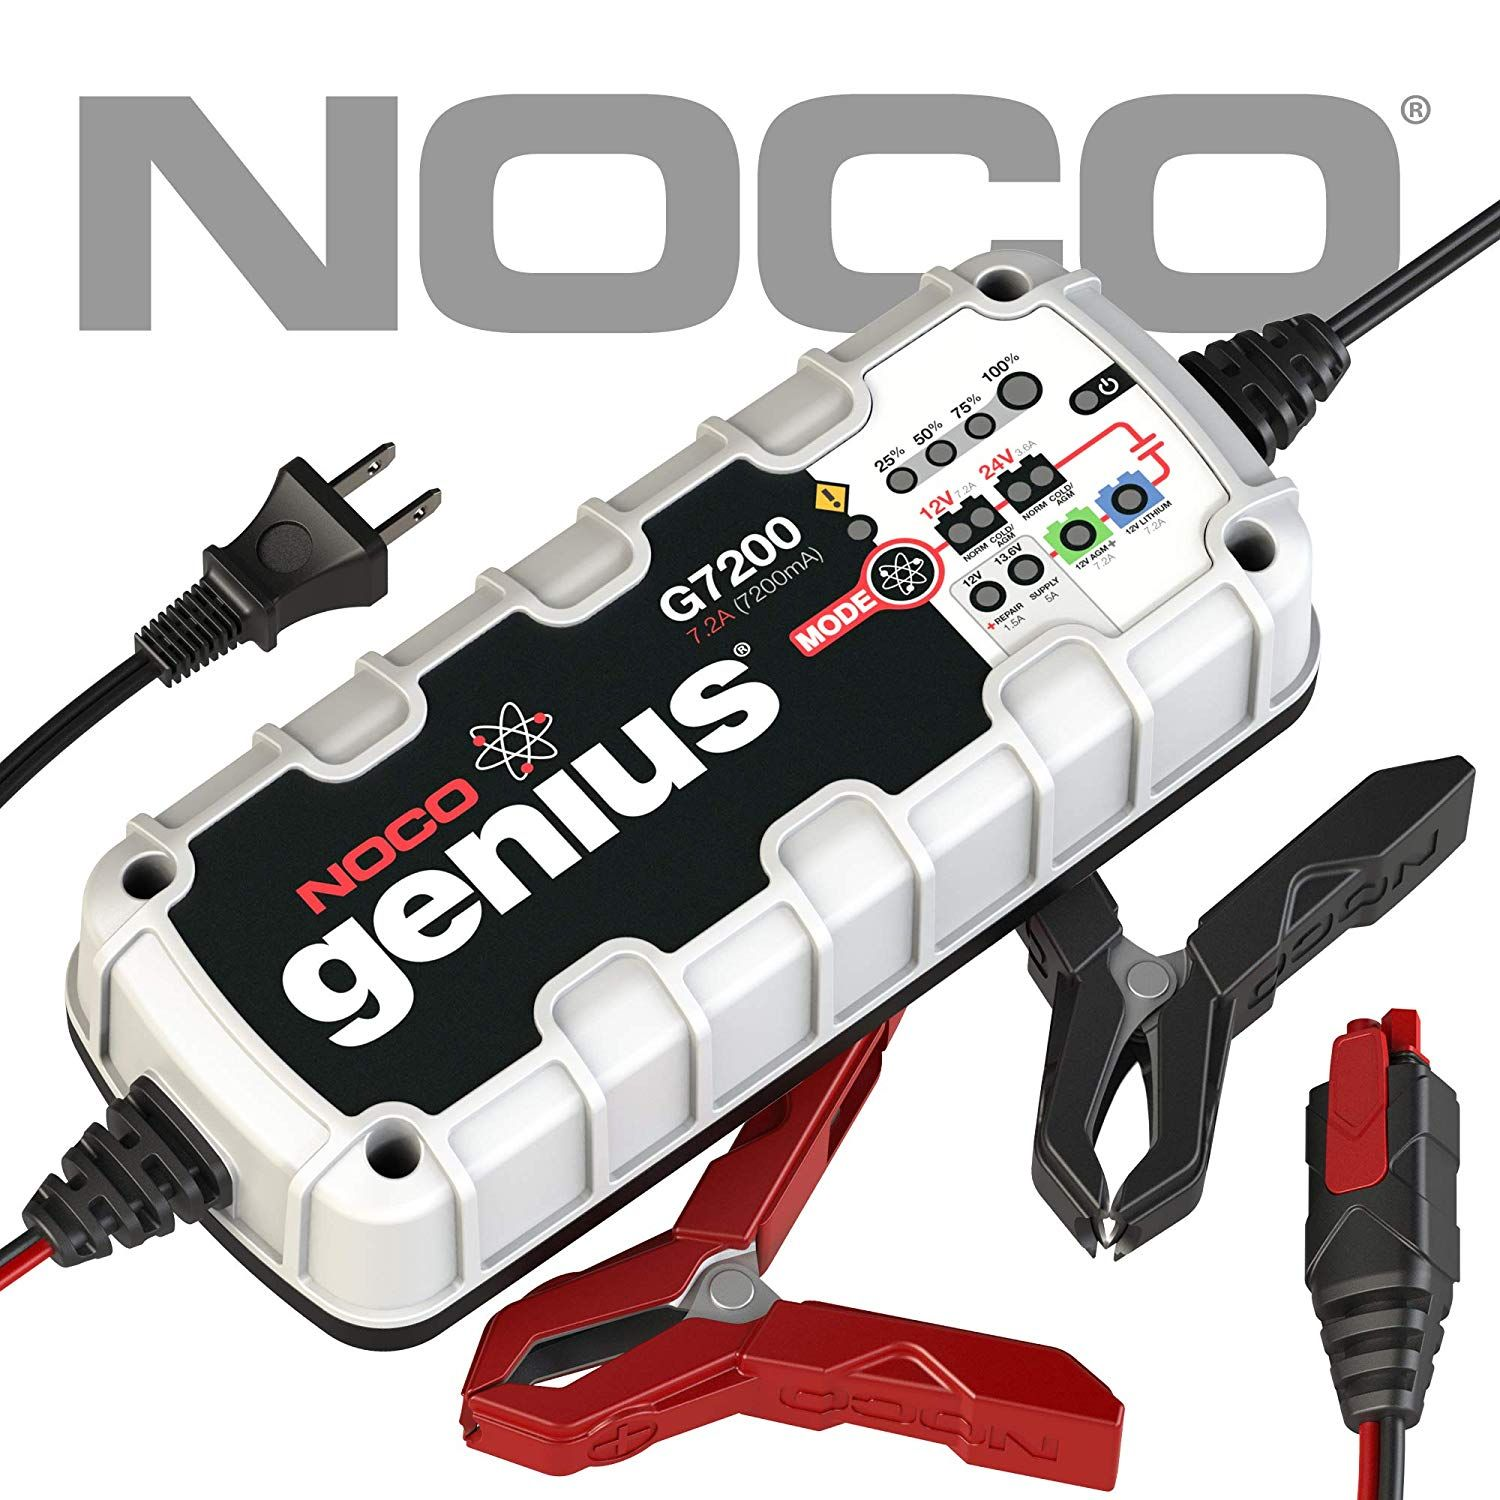 Noco Genius G7200 12v 24v 7 2a Ultrasafe Smart Battery Charger Click Image For More Details This Is An Aff Car Battery Charger Car Battery Battery Charger